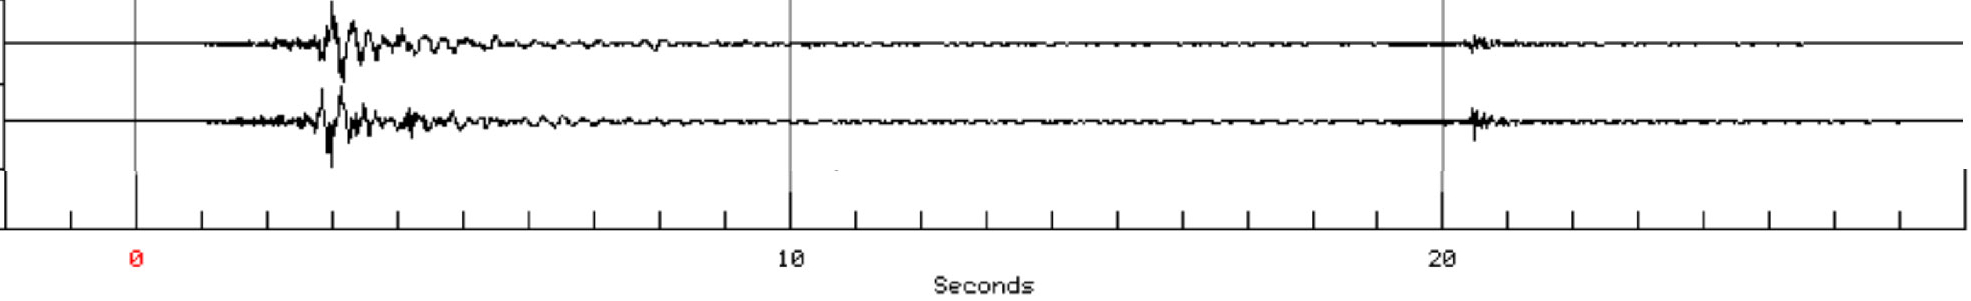 seismic-waves-california-earthquake